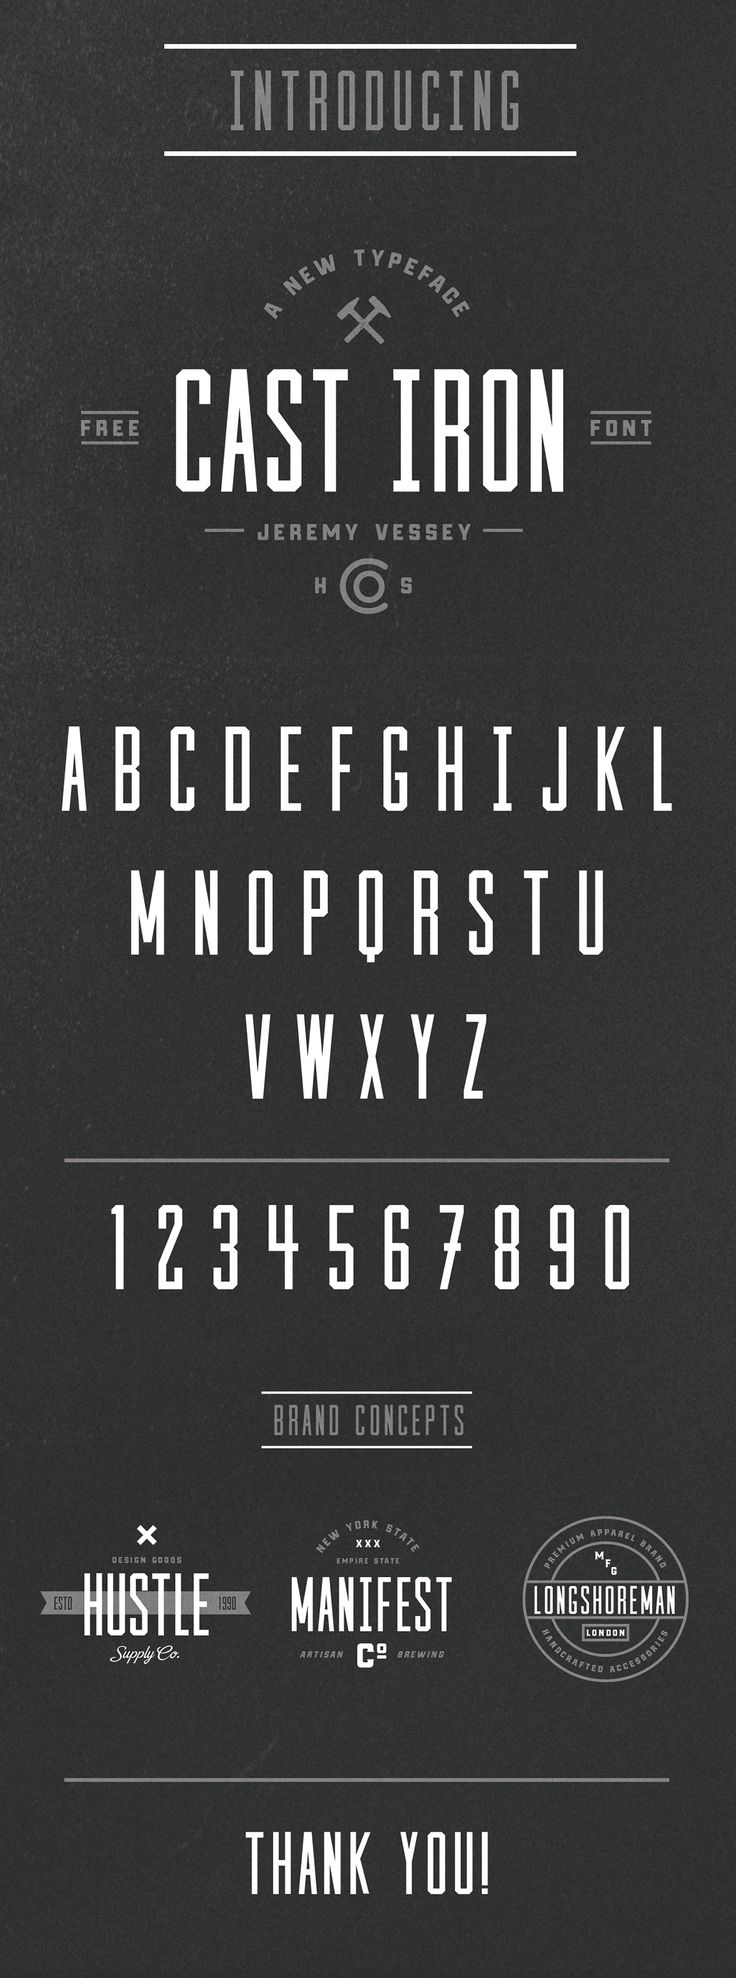 A gorgeous and free condensed sans-serif font, courtesy of Jeremy Vessey.